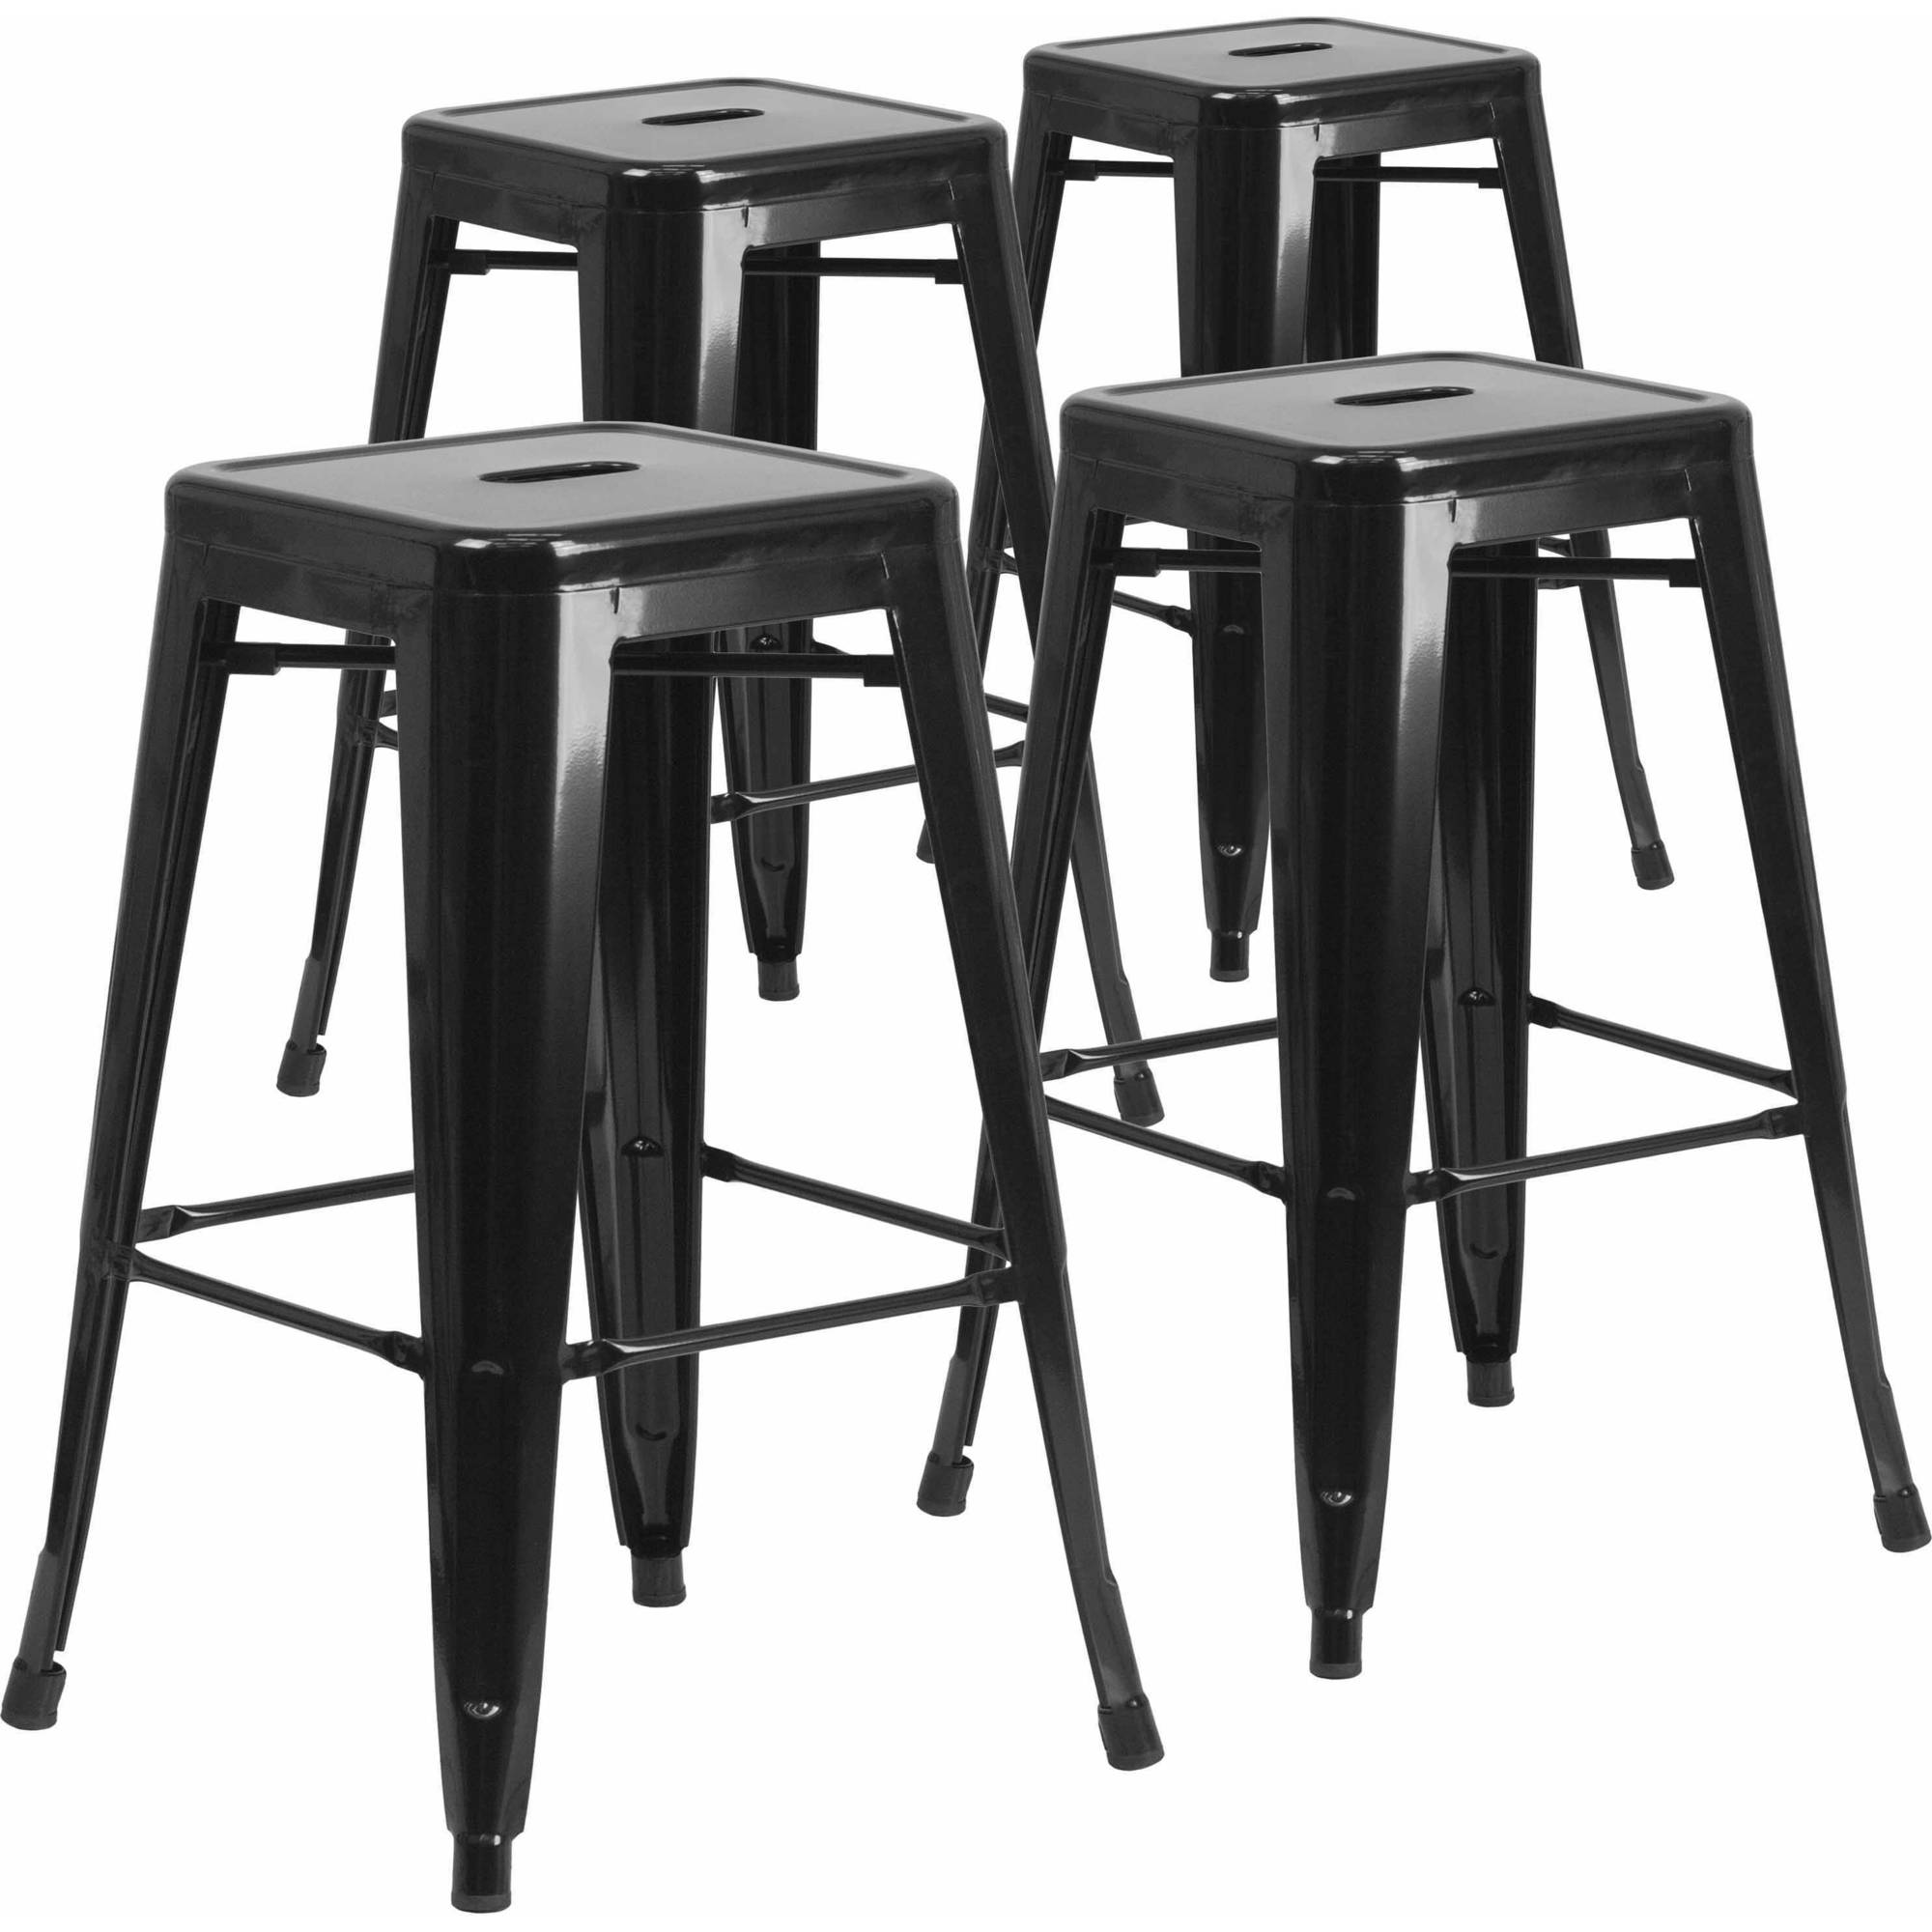 Better Homes and Gardens Adjustable Barstool Oil Rubbed Bronze - Walmart .com  sc 1 st  Walmart & Better Homes and Gardens Adjustable Barstool Oil Rubbed Bronze ... islam-shia.org